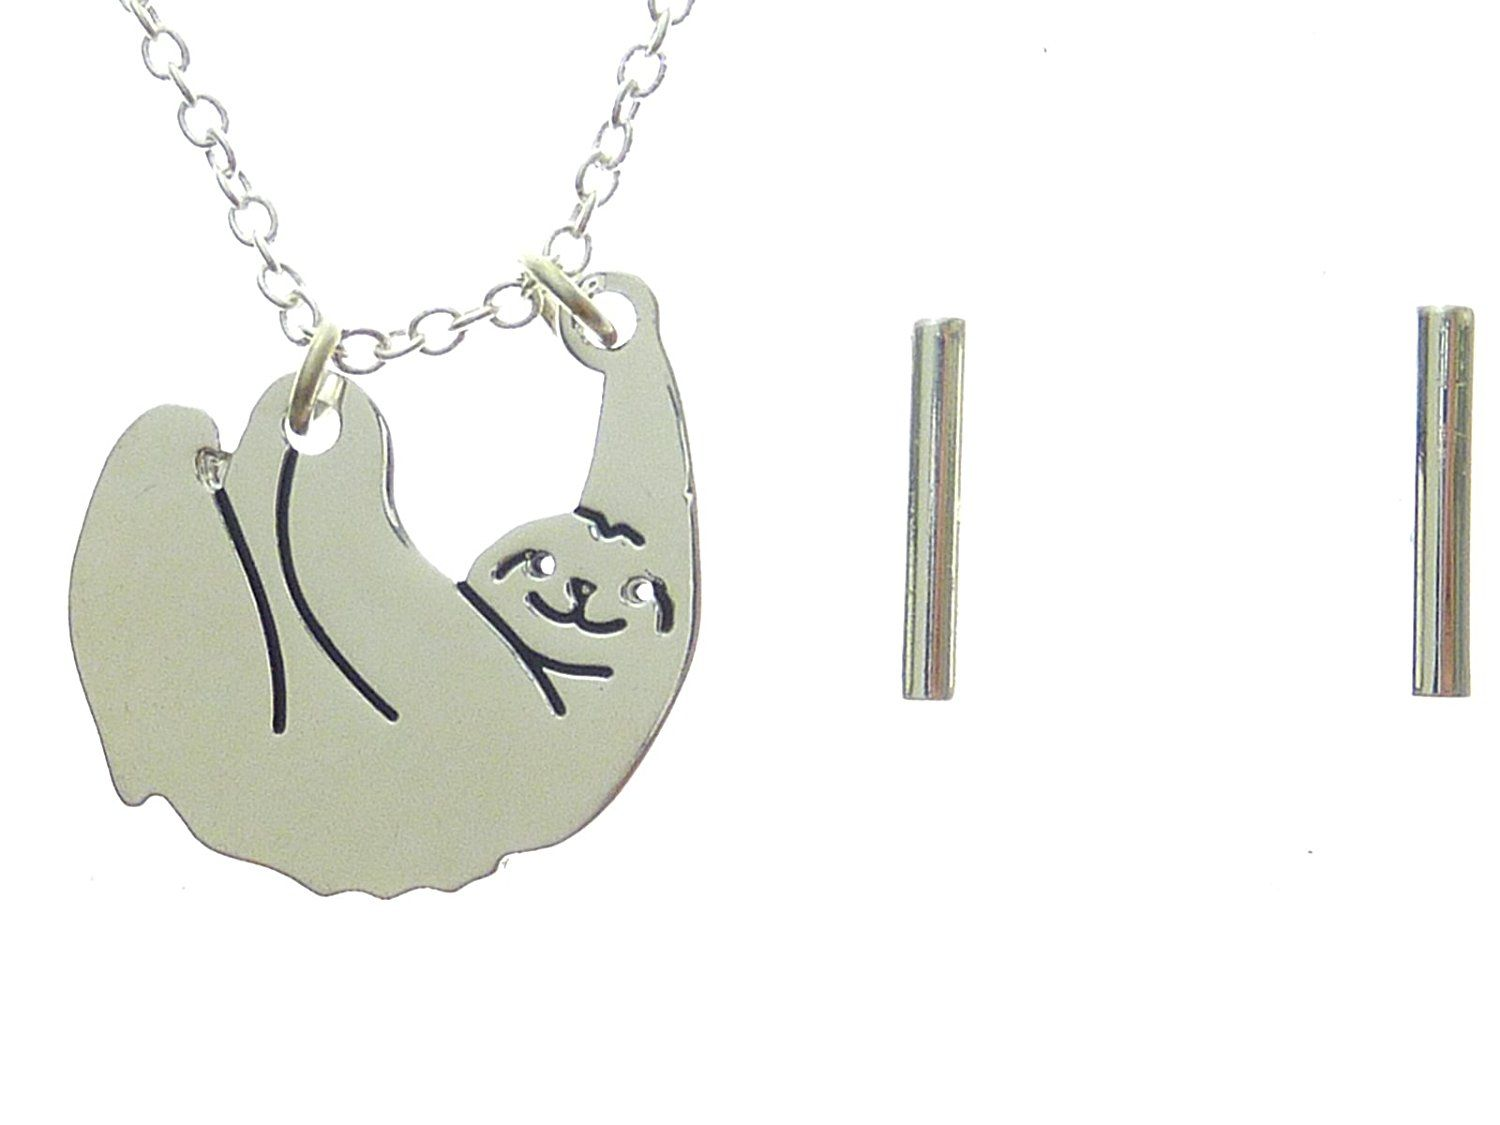 Toki happy sloth pendant necklace and bar earrings set u with